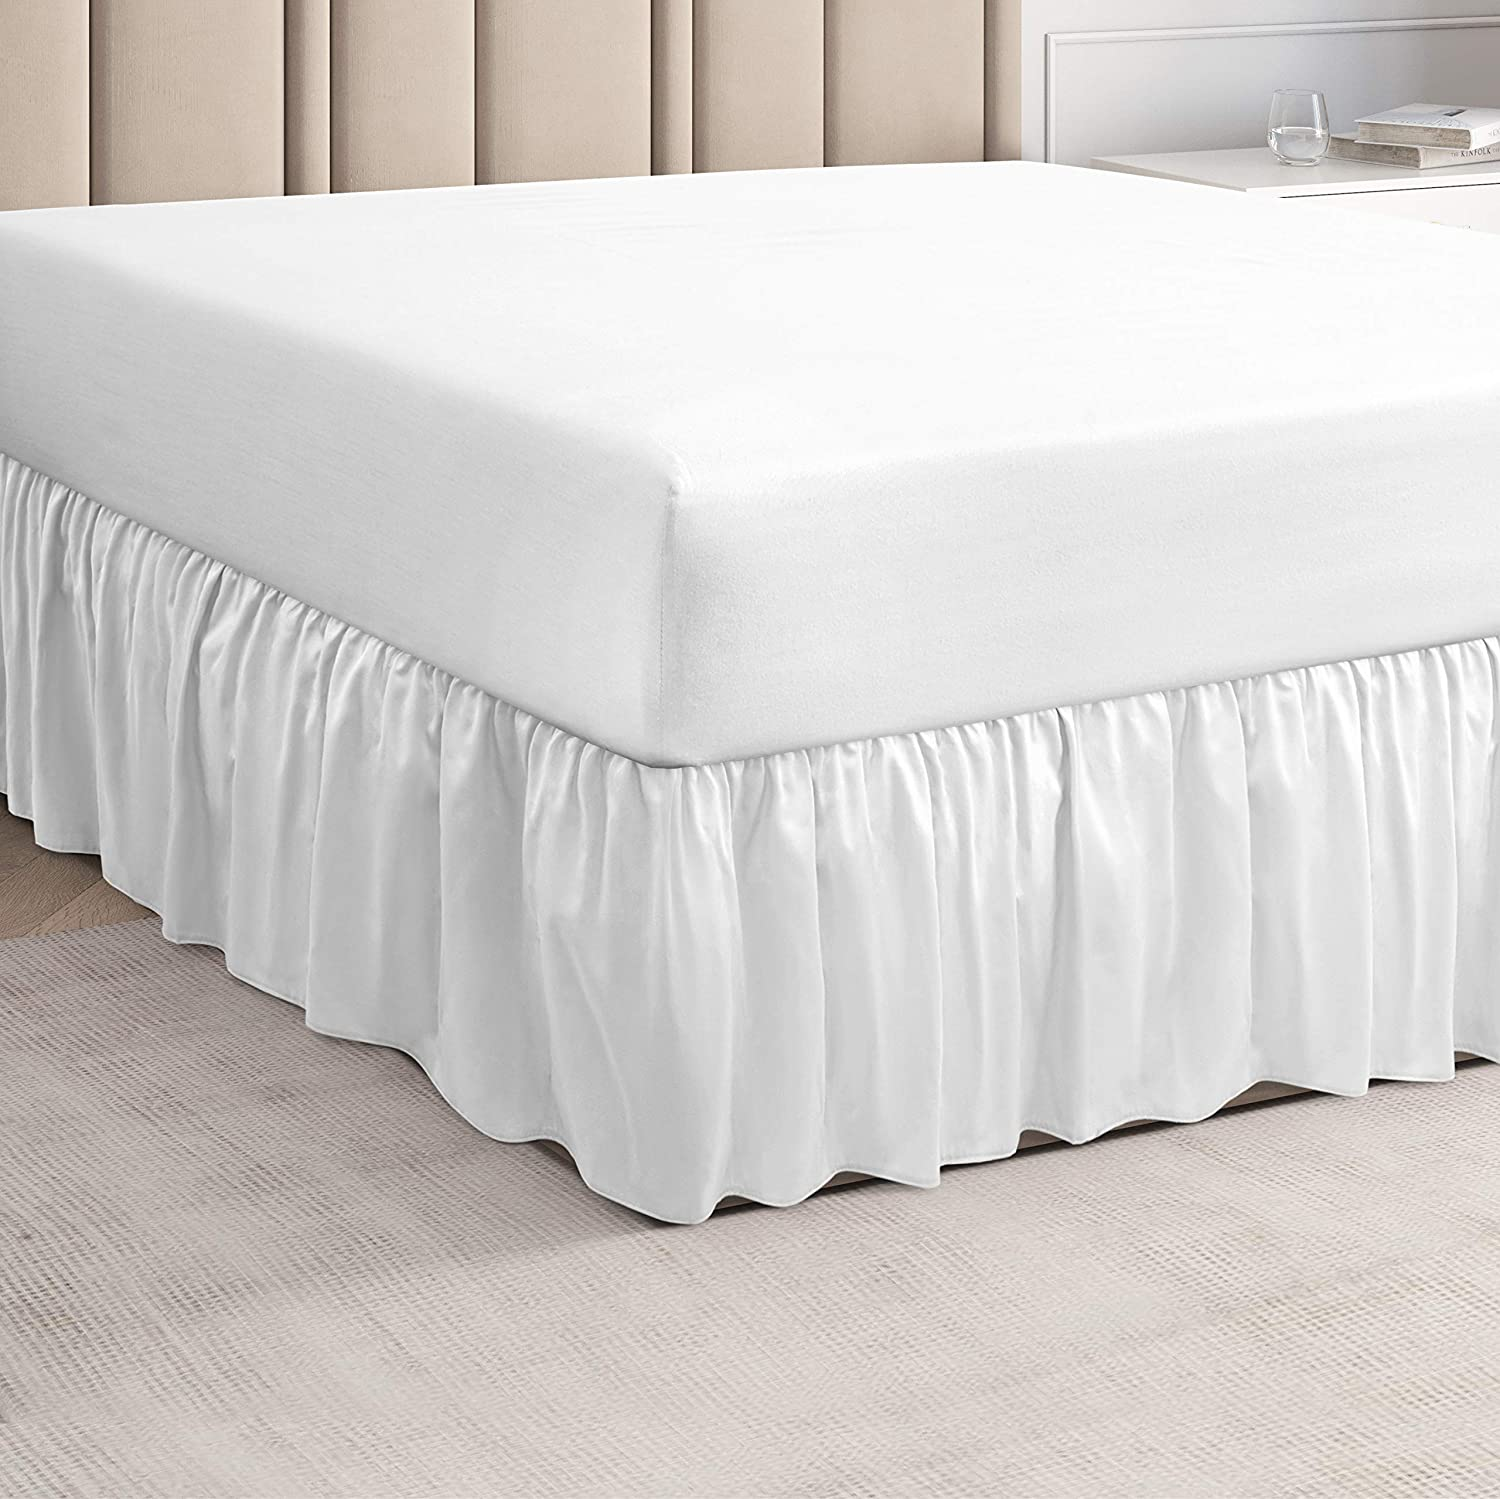 CGK Unlimited - Ruffled White Queen Bed Skirt – Hotel-Quality Ruffles for Queen Beds with 14 in. Drop – Under-The-Mattress Queen Bedskirt for Easy Fitting with Brushed Fabric